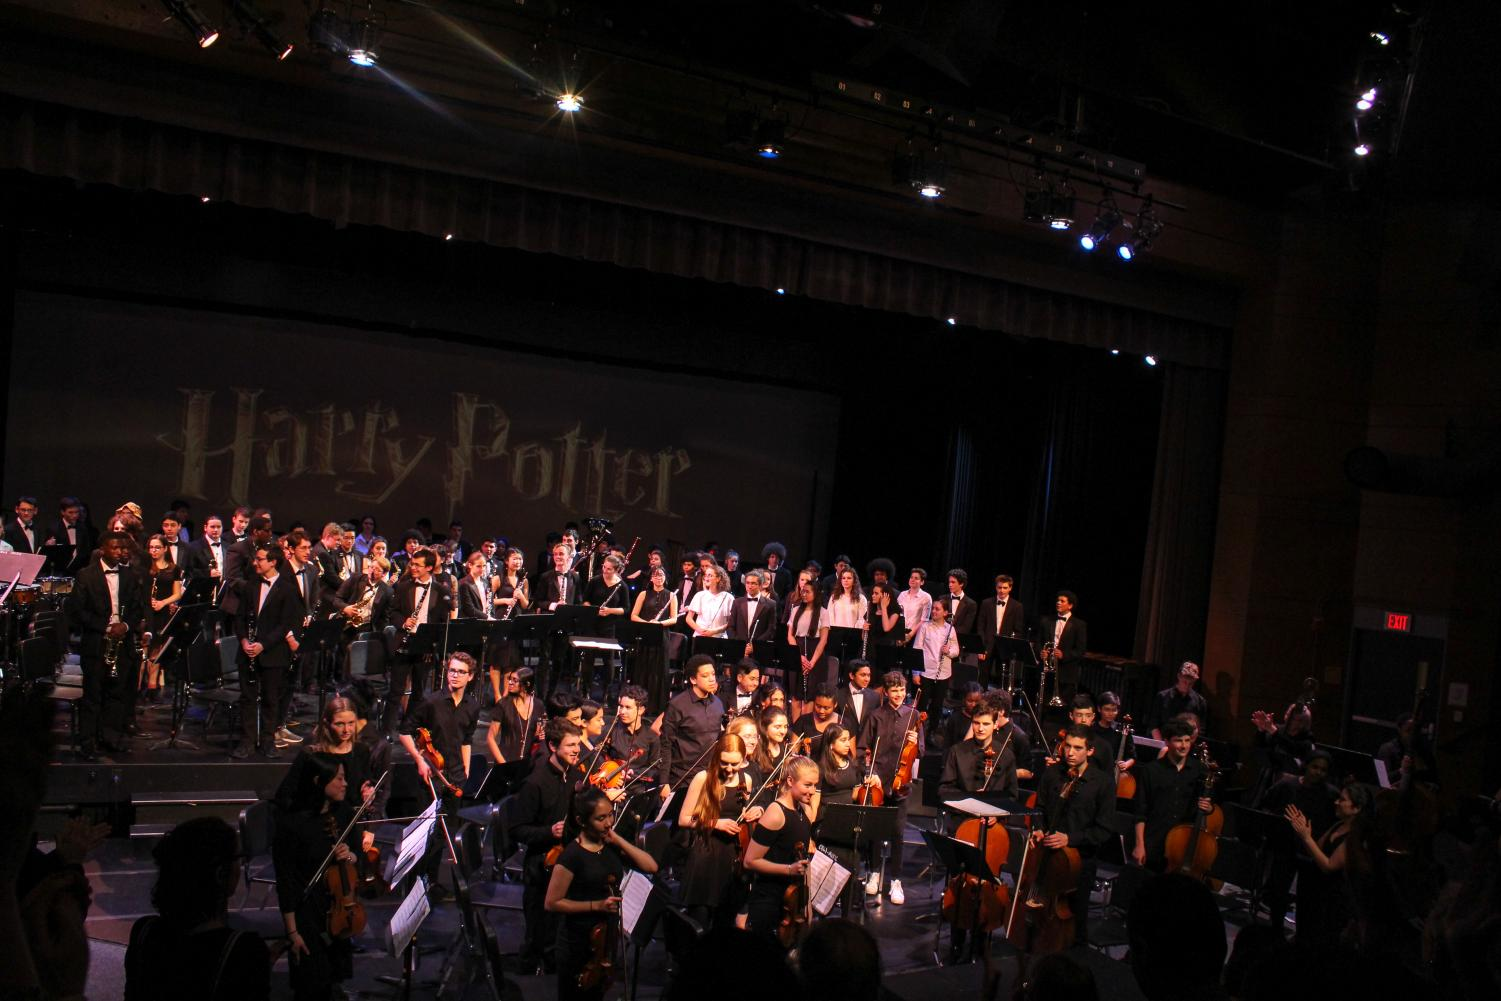 CRLS+musicians+spent+the+night+of+the+Spring+Concert+sharing+their+various+musical+talents+with+the+rest+of+the+school+community.